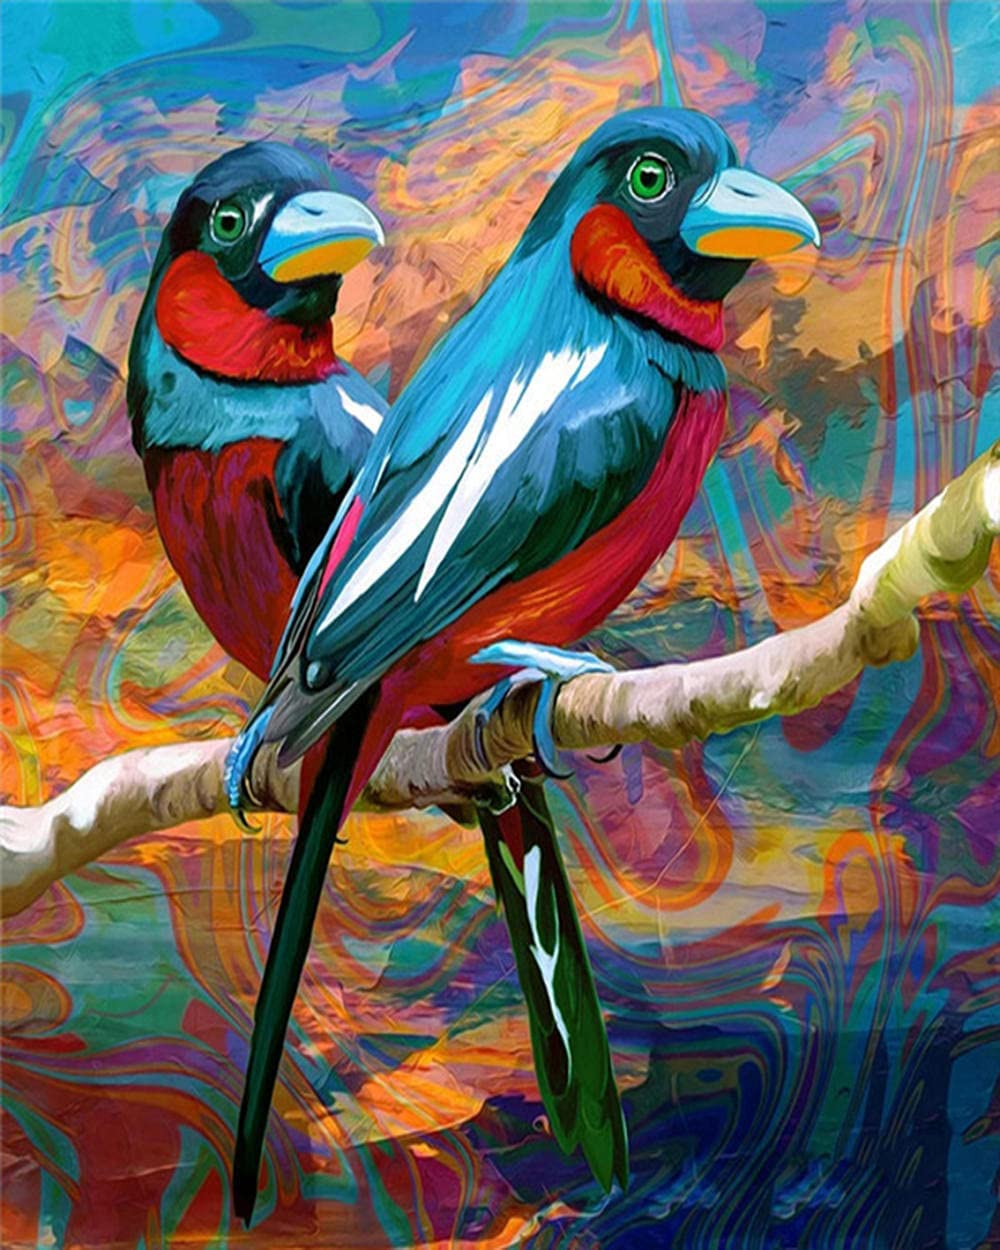 HRKDHBS Paint by favorite Numbers Parrot Max 68% OFF 40X50Cm Frame with DIY Acrylic